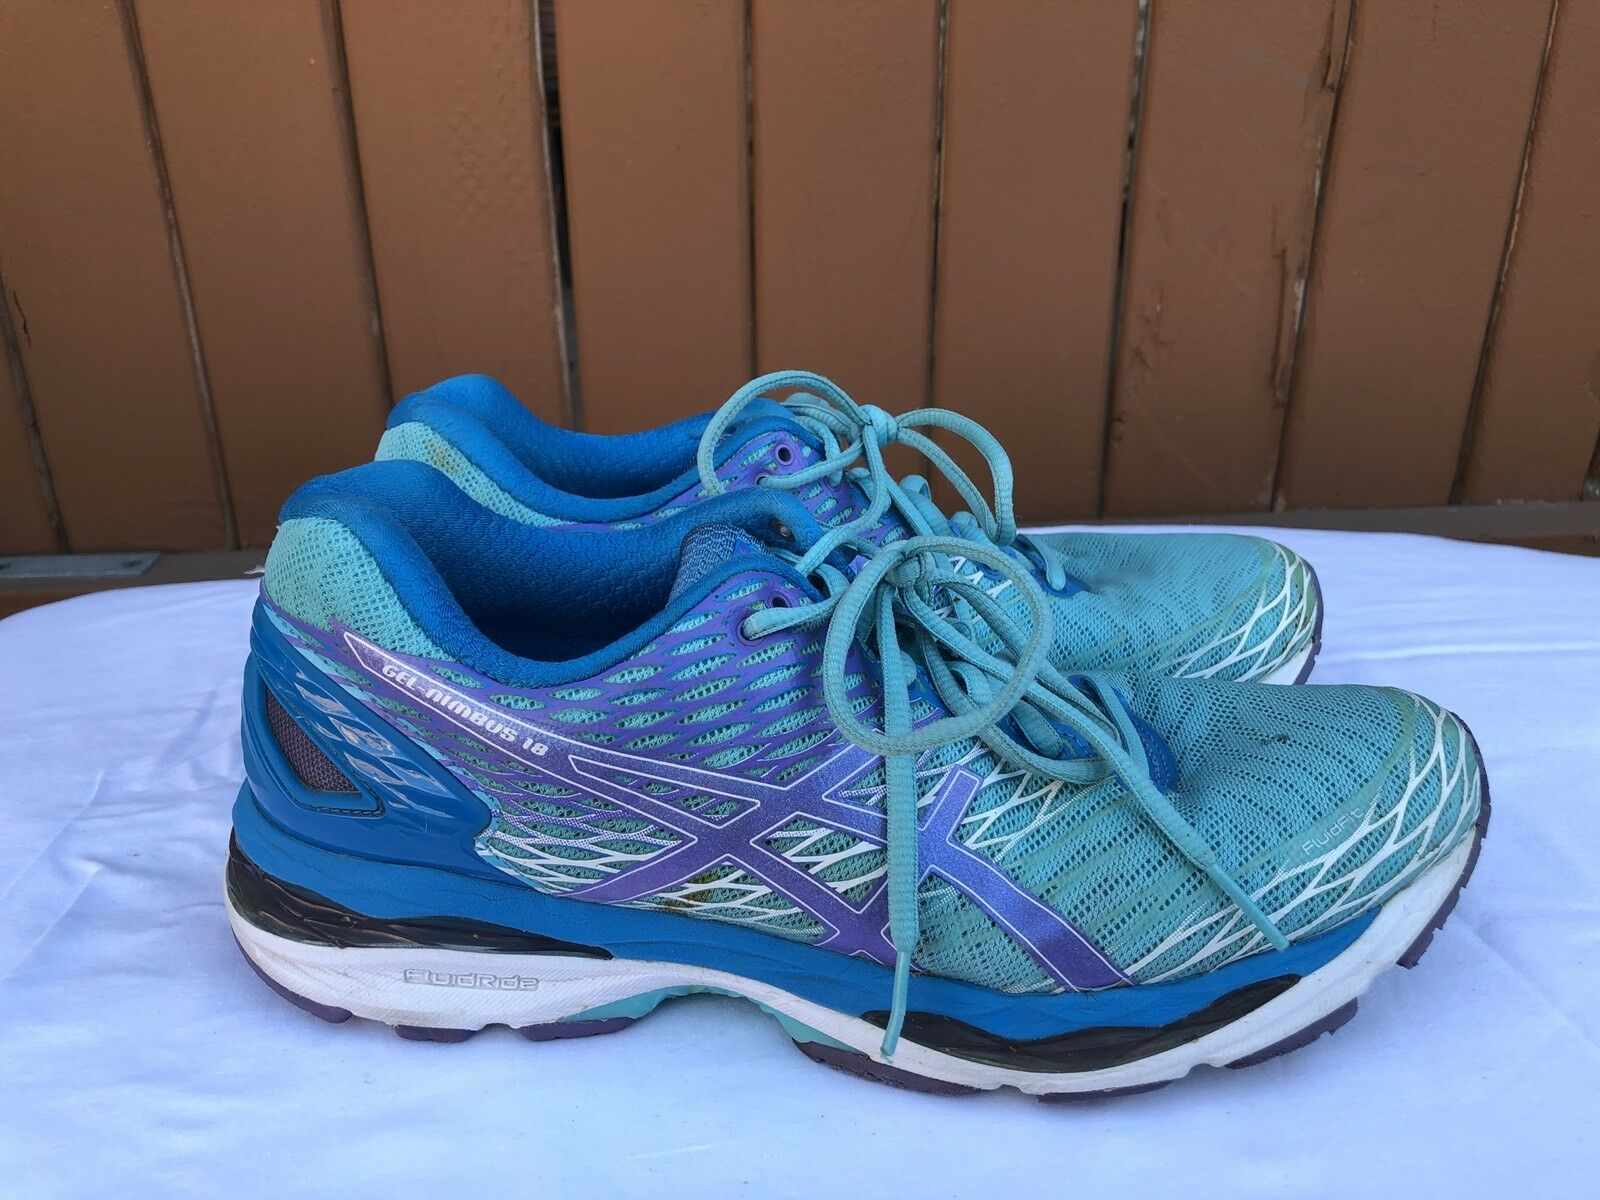 EUC ASICS T650N Gel-Nimbus 18 Women's Size US 9.5 Turquoise Iris Athletic shoes